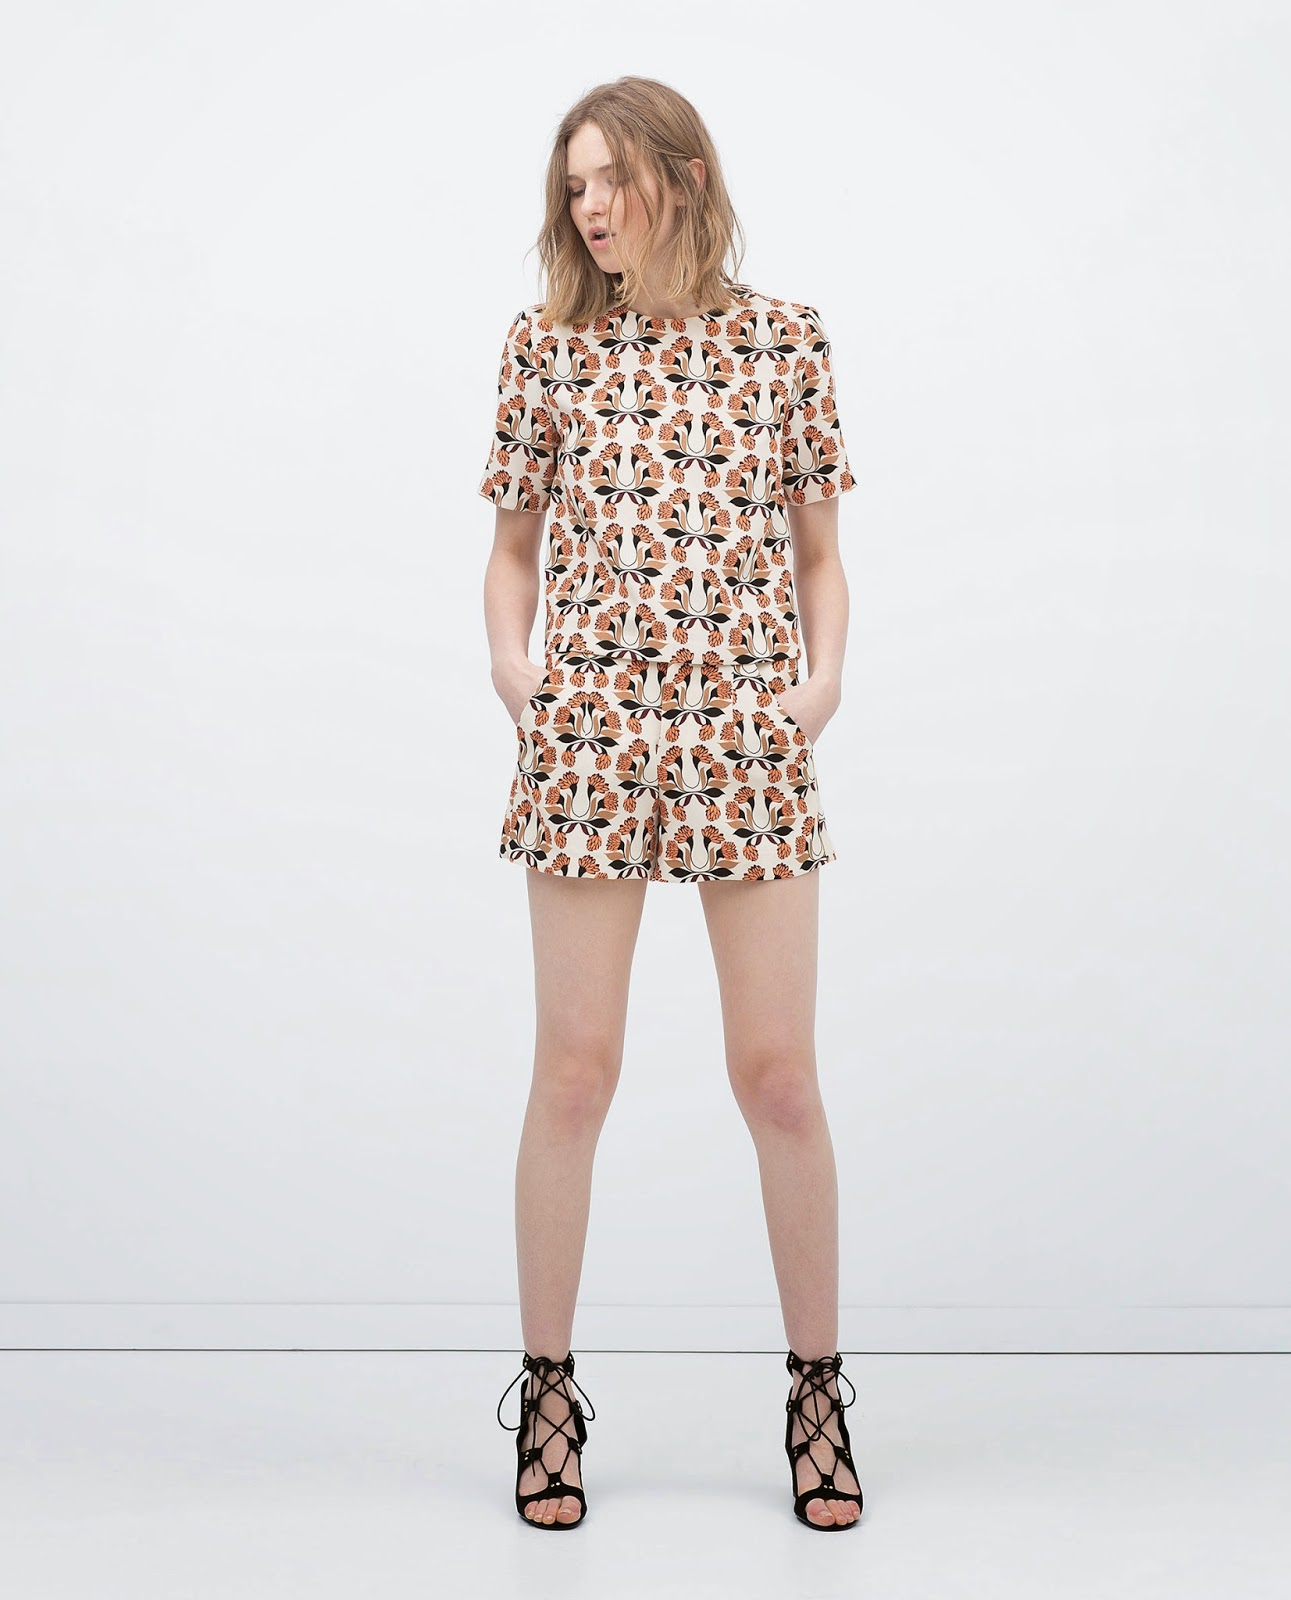 zara printed top and shorts